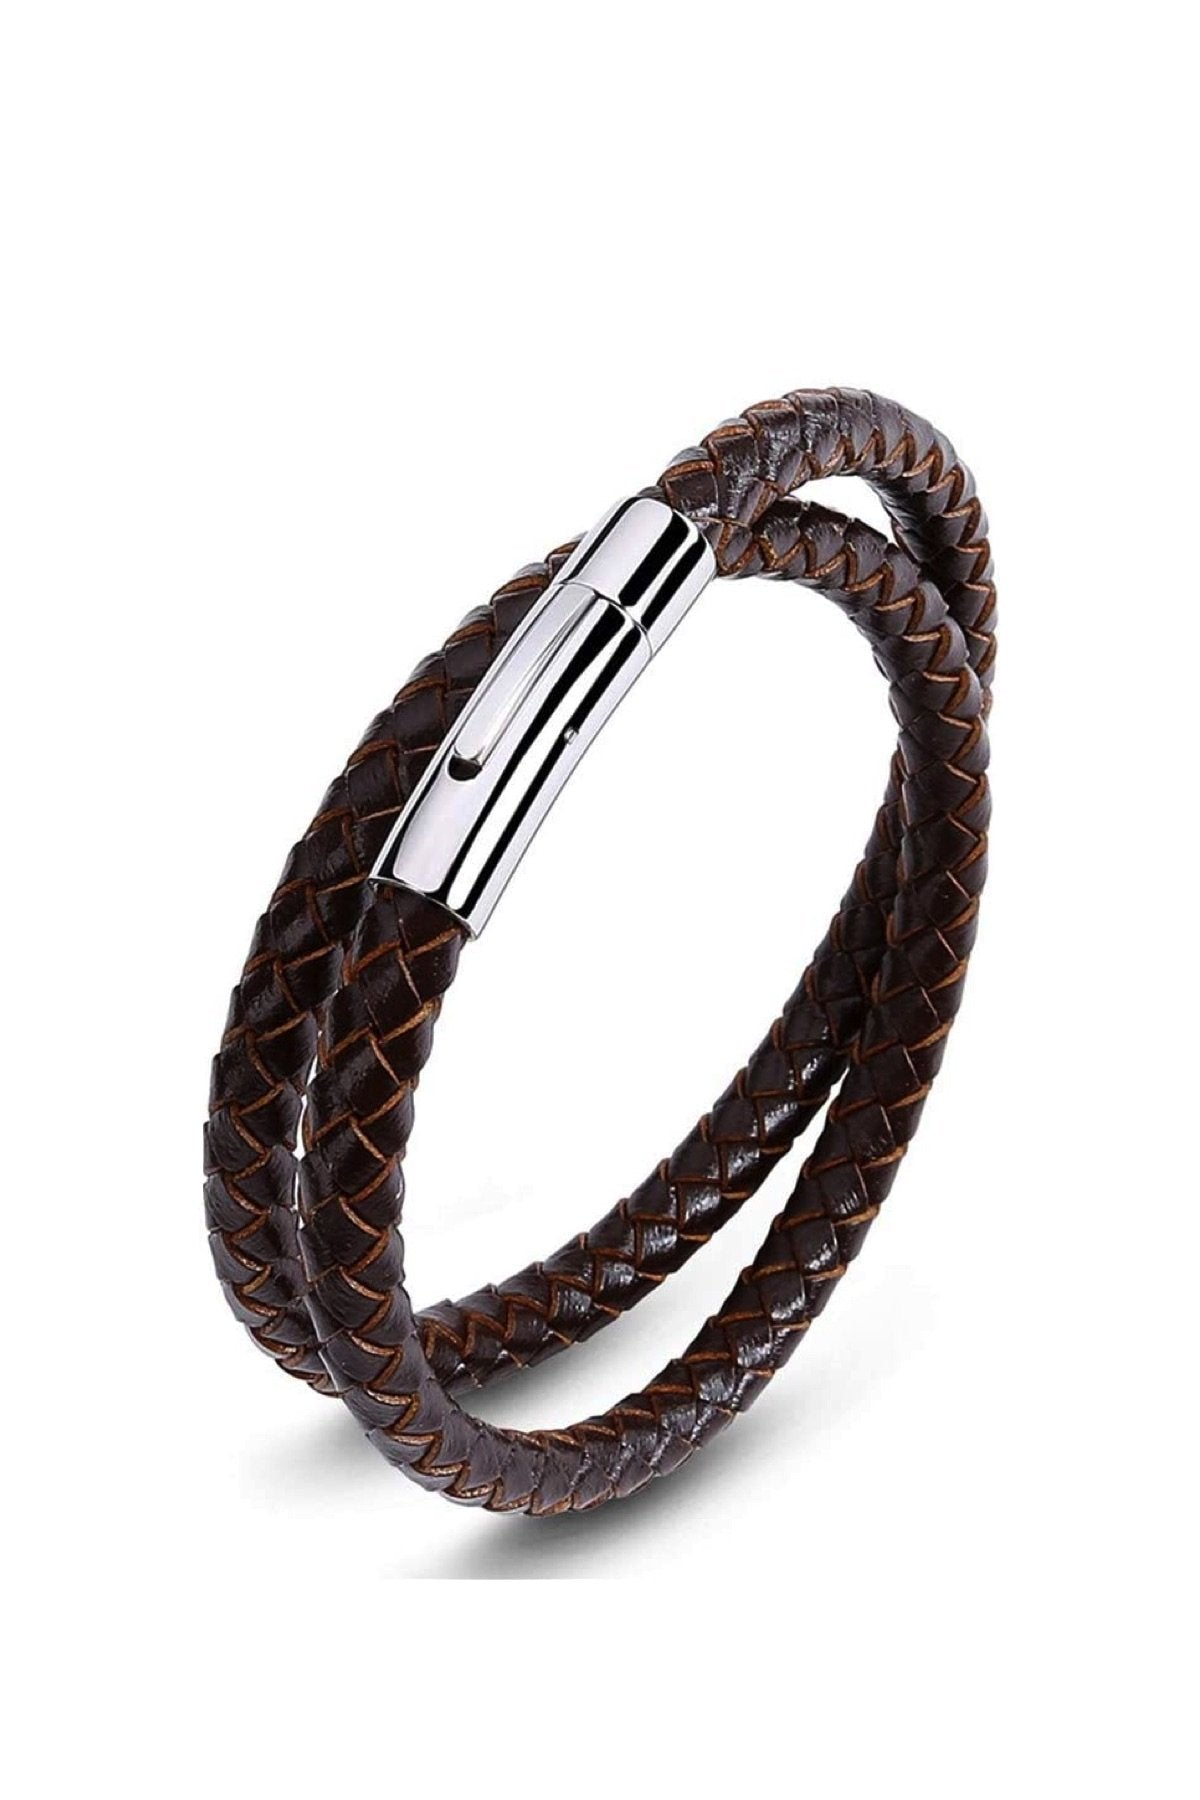 Silver & Brown Leather Wrap Bracelet